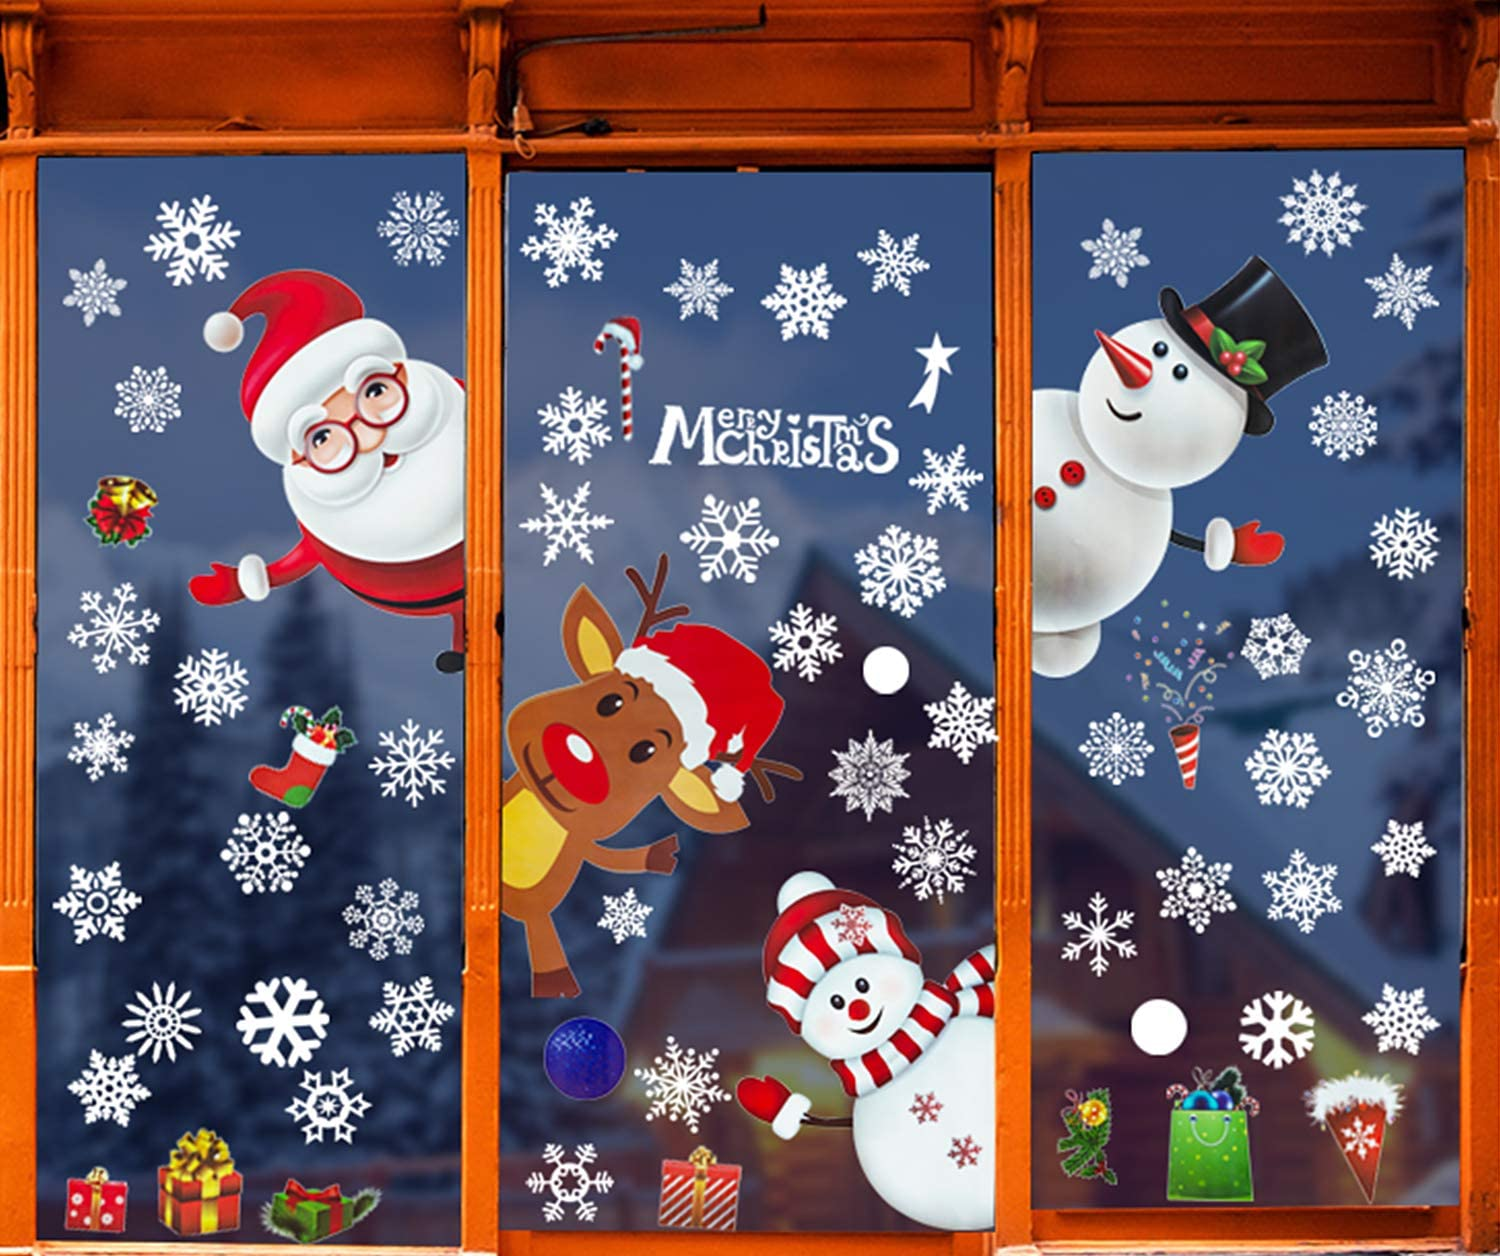 4 Large Sheets Christmas Window Clings Christmas Decorations Snowfake Santa Snowman Reindeer Static Decals Wall Stickers for Home Office Christmas Decor